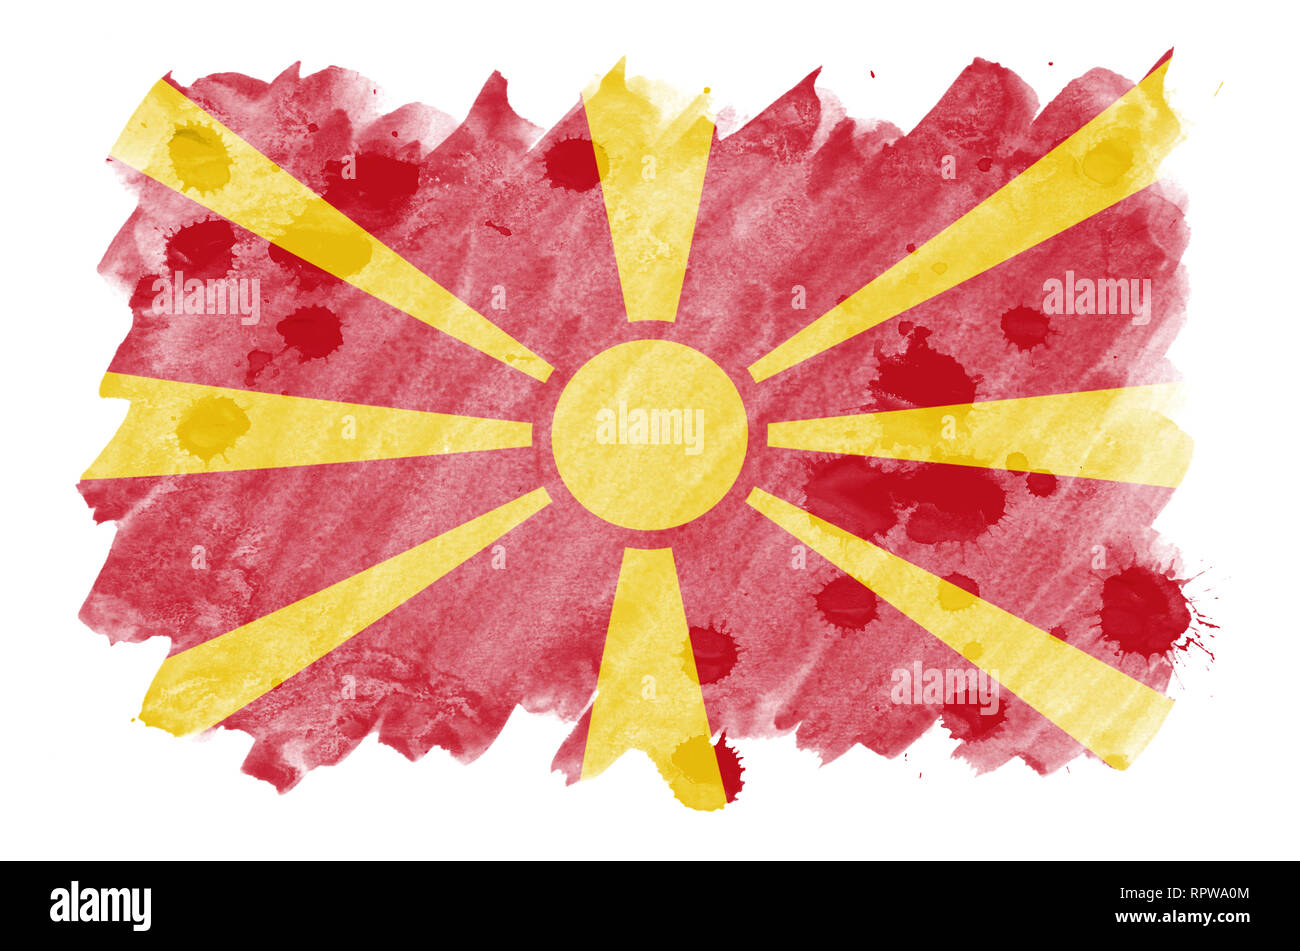 Macedonia flag  is depicted in liquid watercolor style isolated on white background. Careless paint shading with image of national flag. Independence  - Stock Image